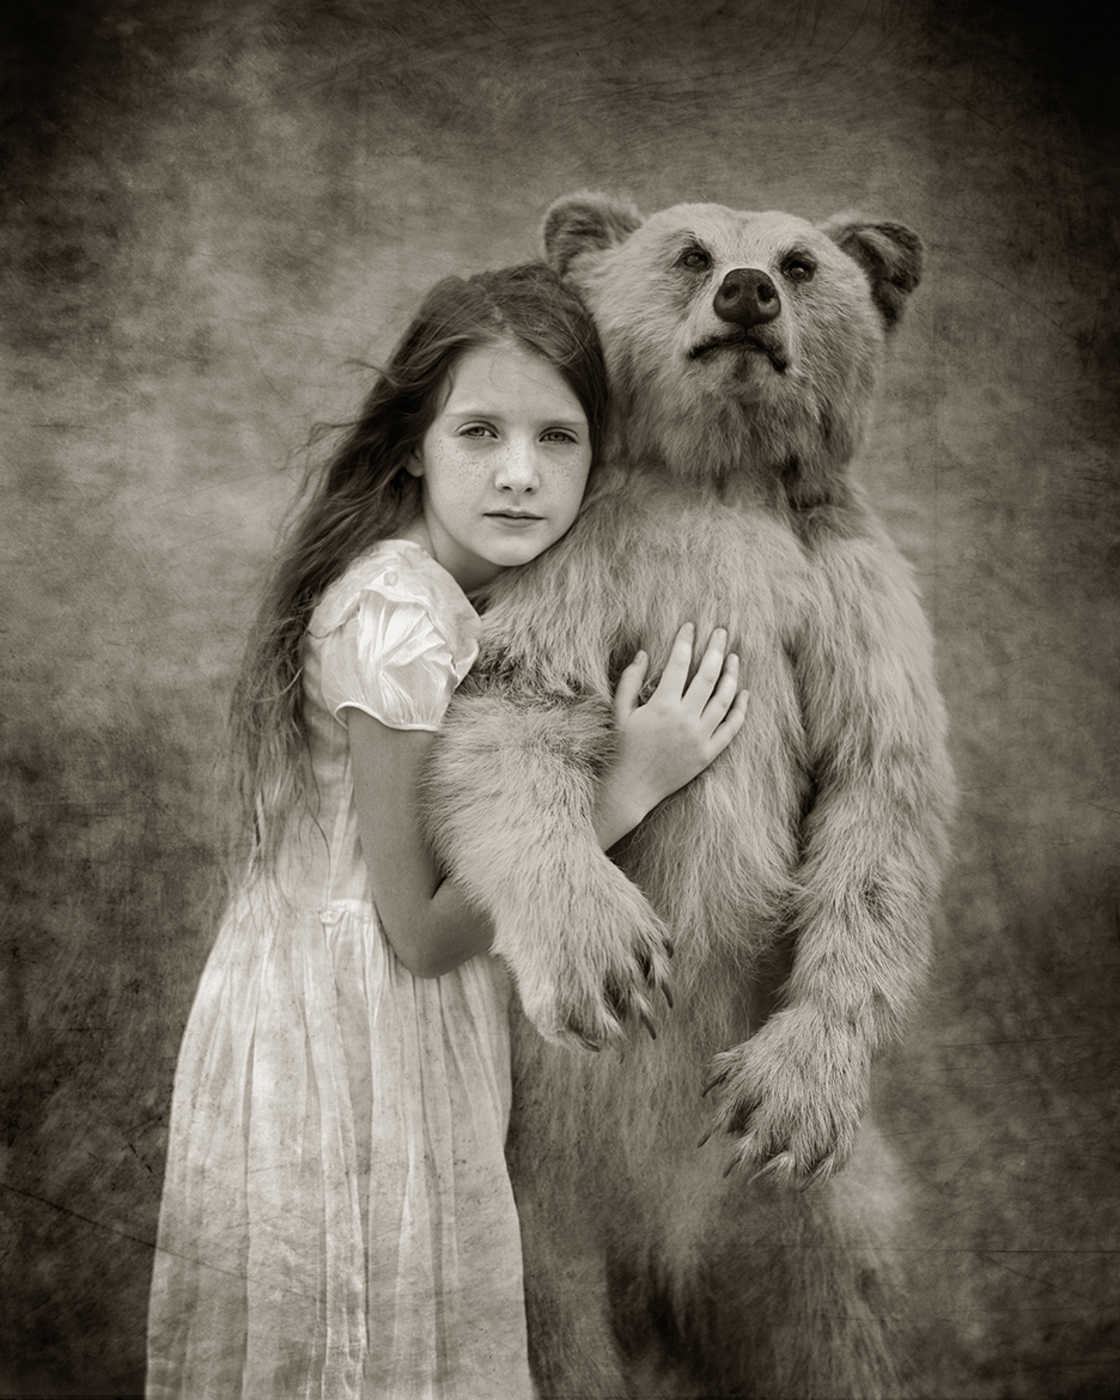 Kids and Animals - The stunning and captivating portraits of Erika Masterson